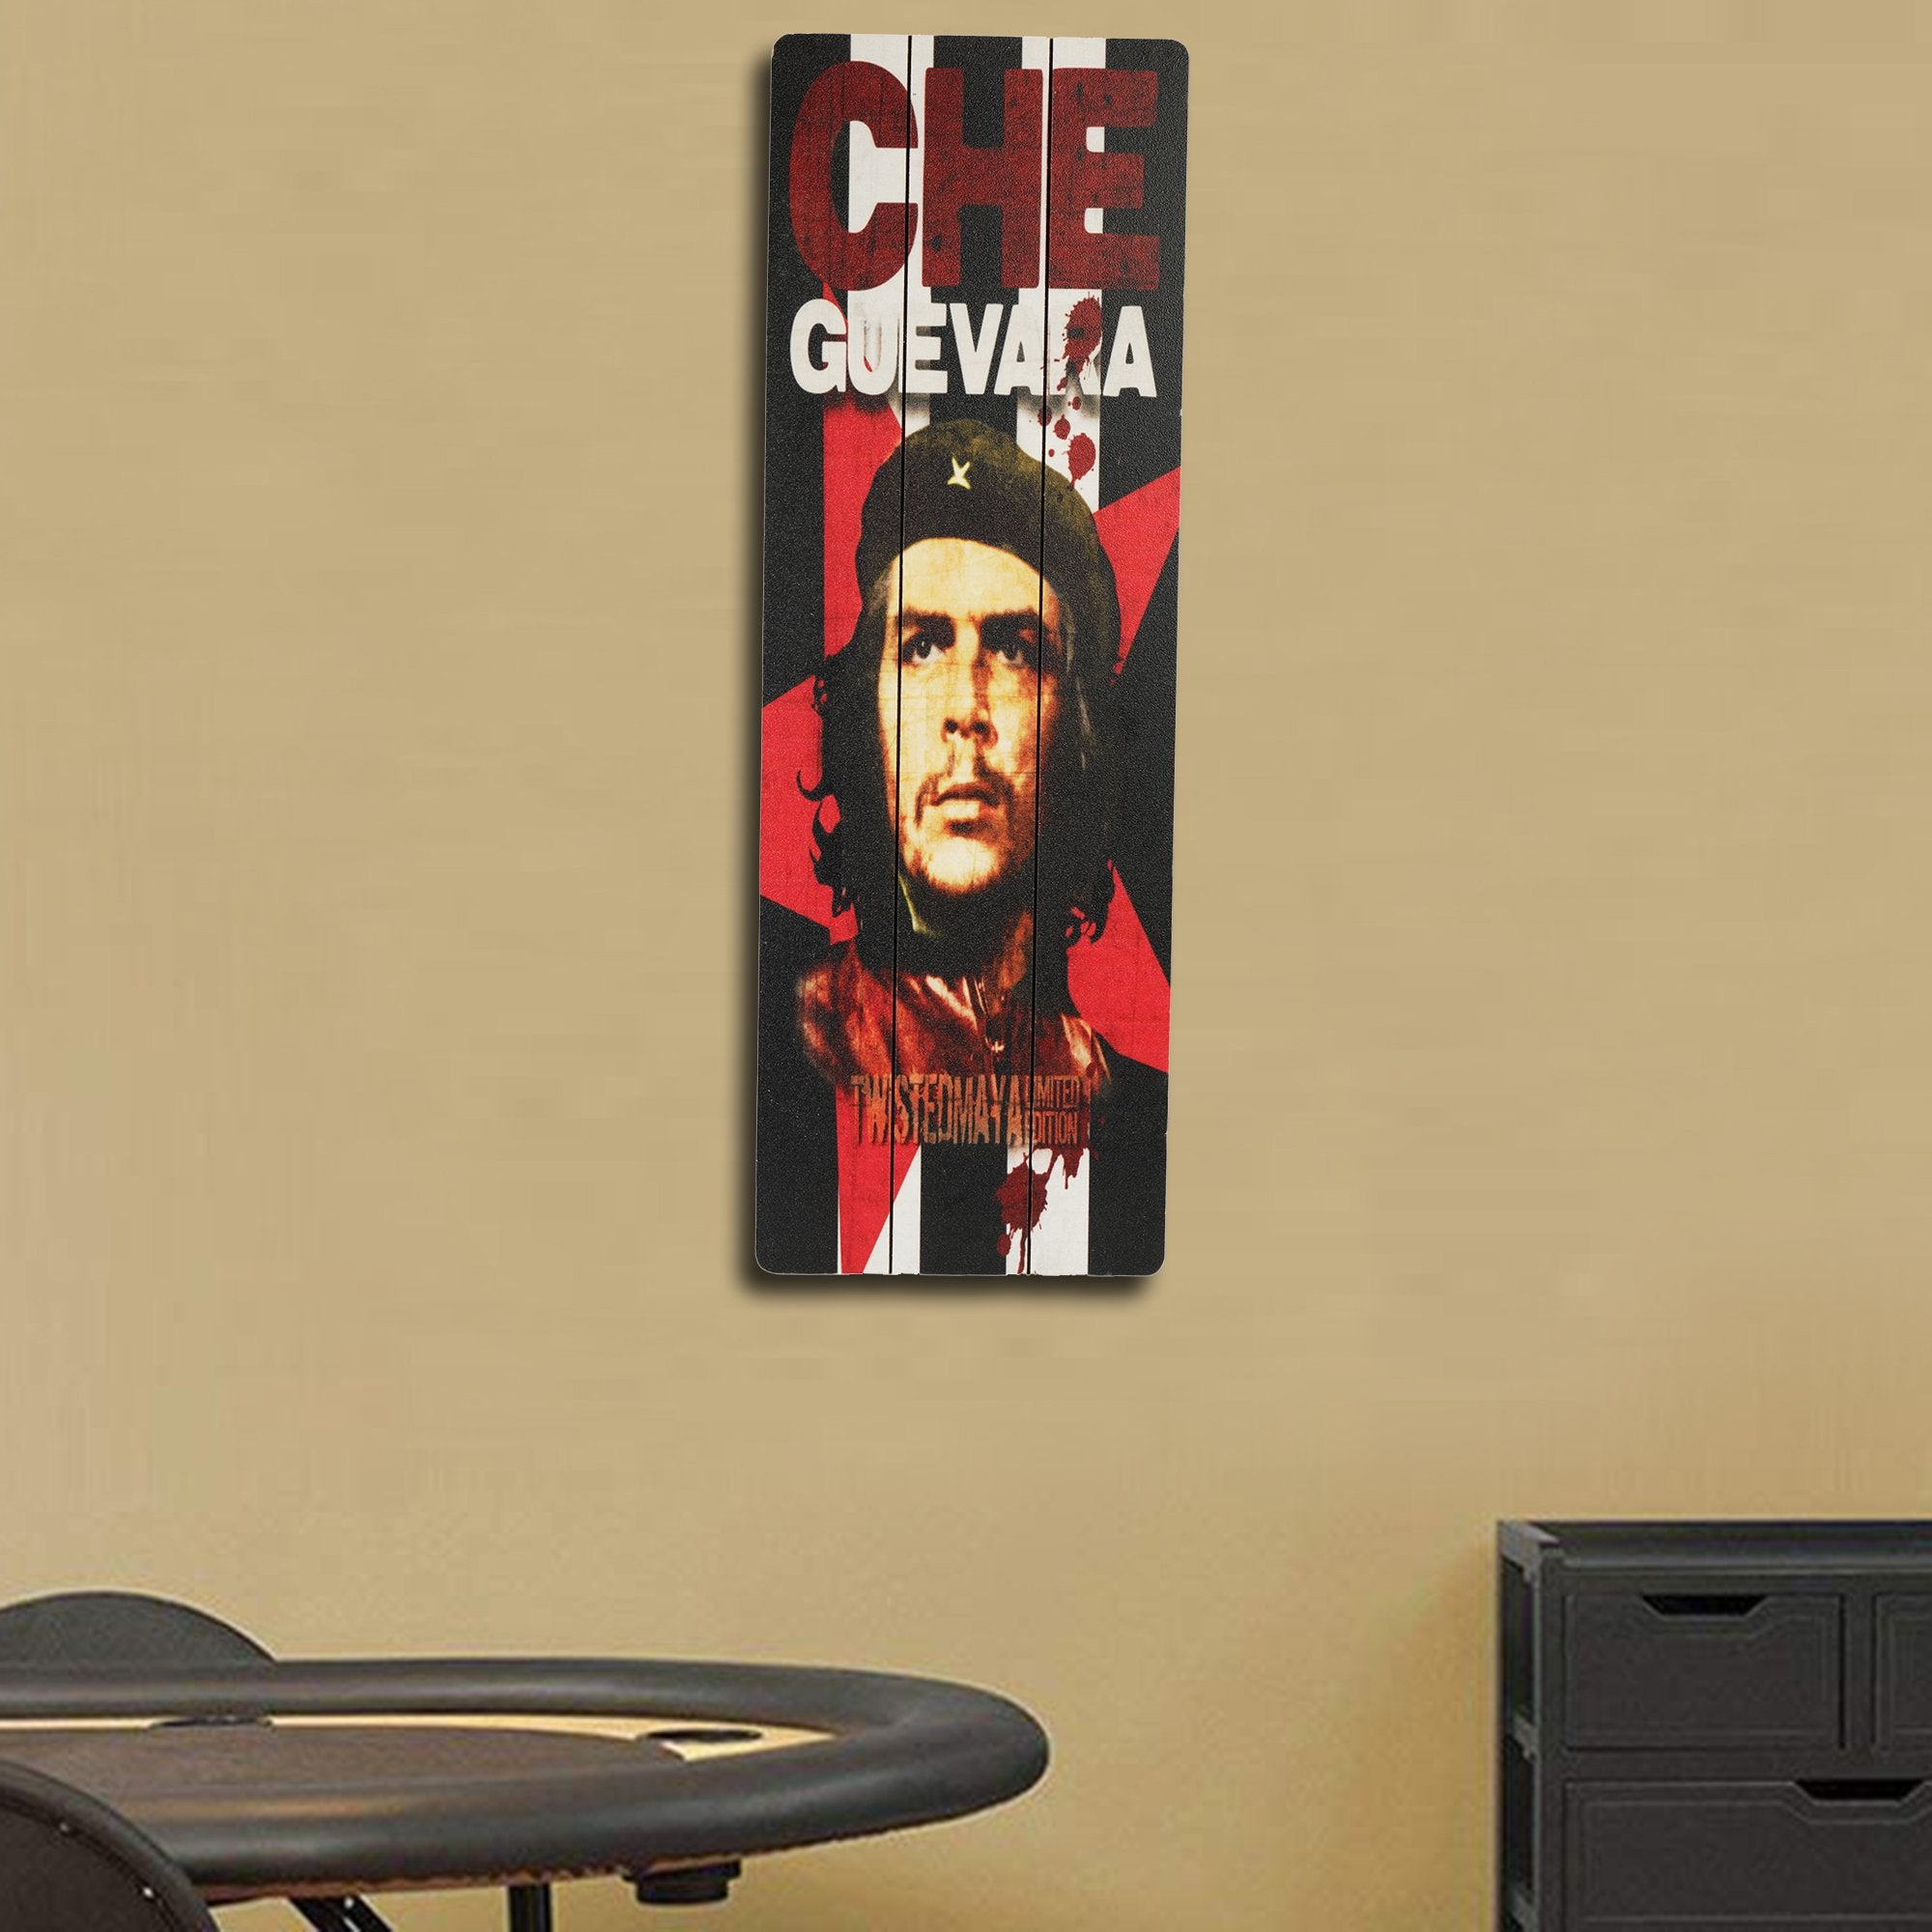 Che Guevara Wooden Wall Plaque from Teak Tale HomeDecors